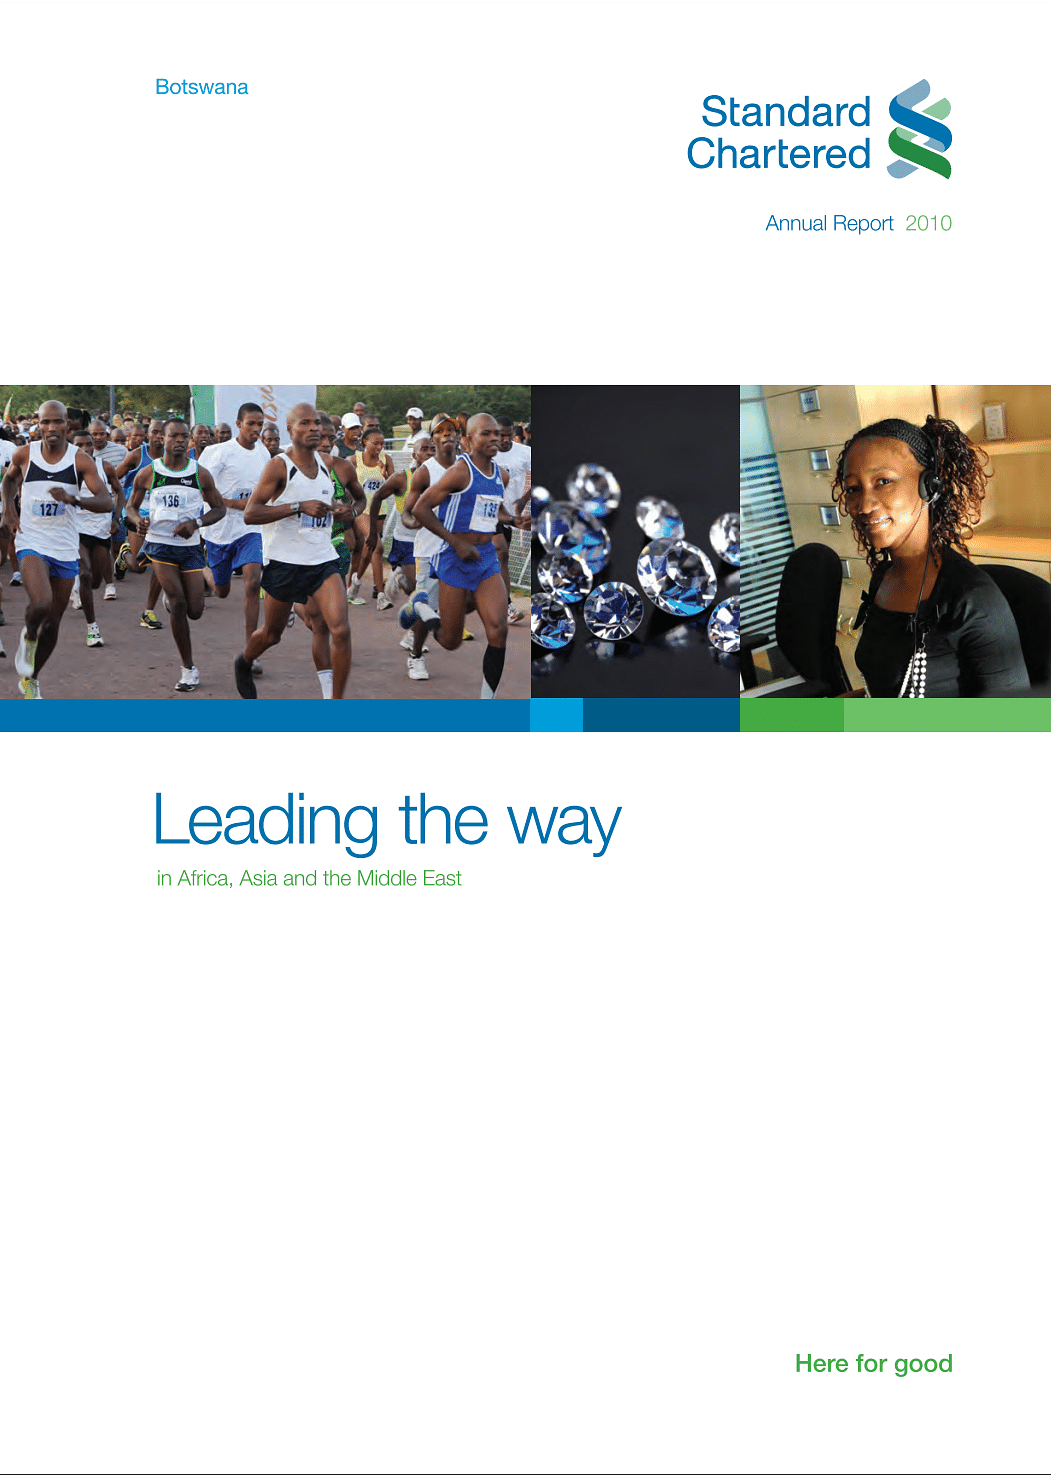 Standard Chartered Bank Botswana Annual Report 2010 cover